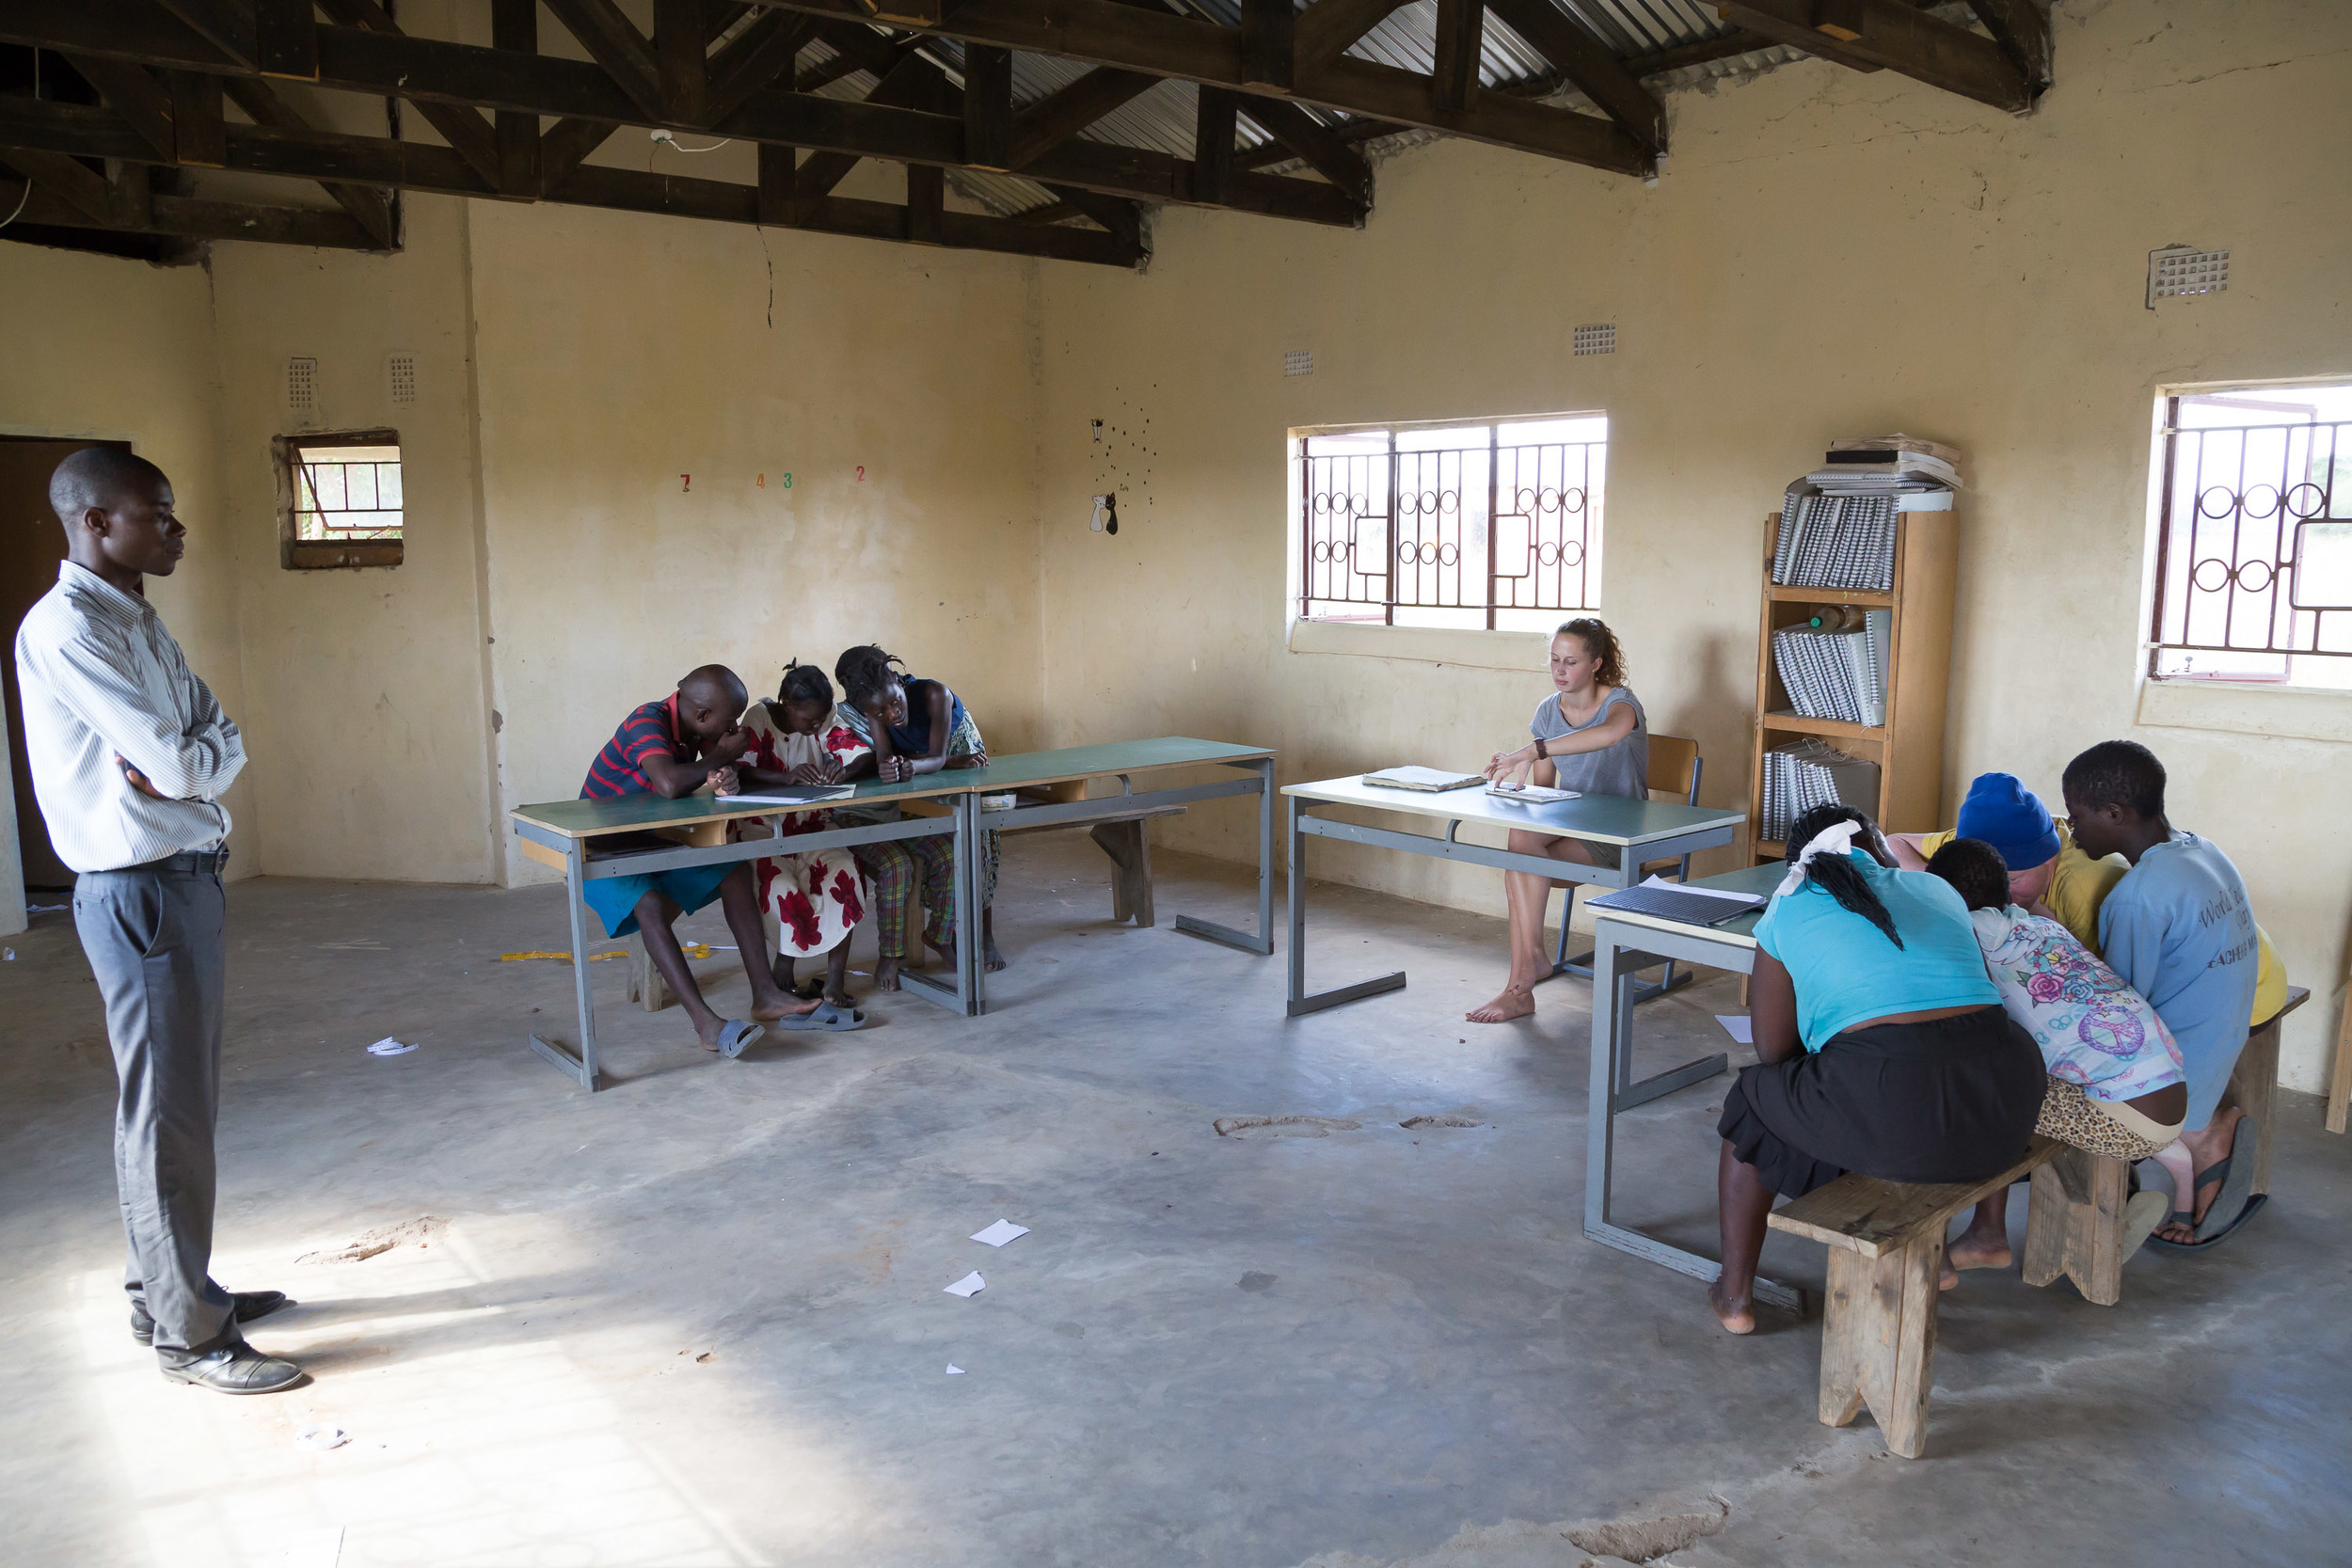 Mr. Masasa overseeing the classroom debate. Which is better - Pasta or Soya?